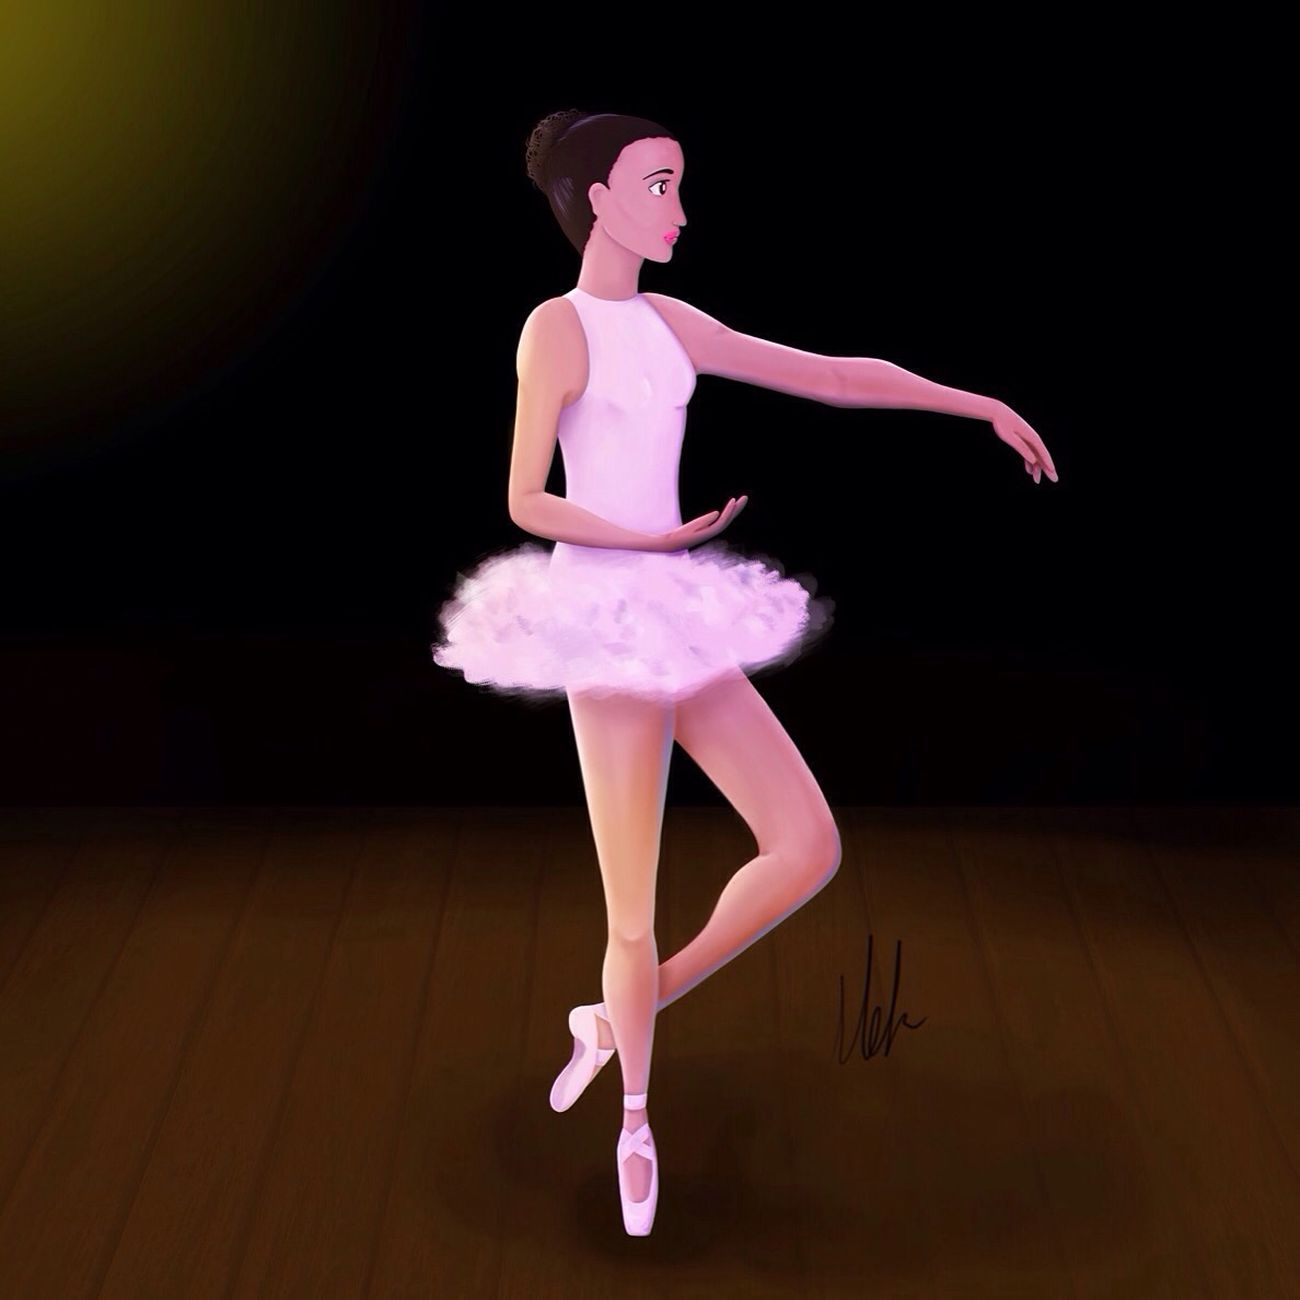 I'm pretty sure I was a ballerina in a previous life, I have the grace for it... not.💃🏻 Photoshop Digitaldesign Sketching Doodle Sketch Digital Art Sketchbook Drawing Digital Art Ballet Dancer Ballerina Dance Dancing Dancing Girl Ballet